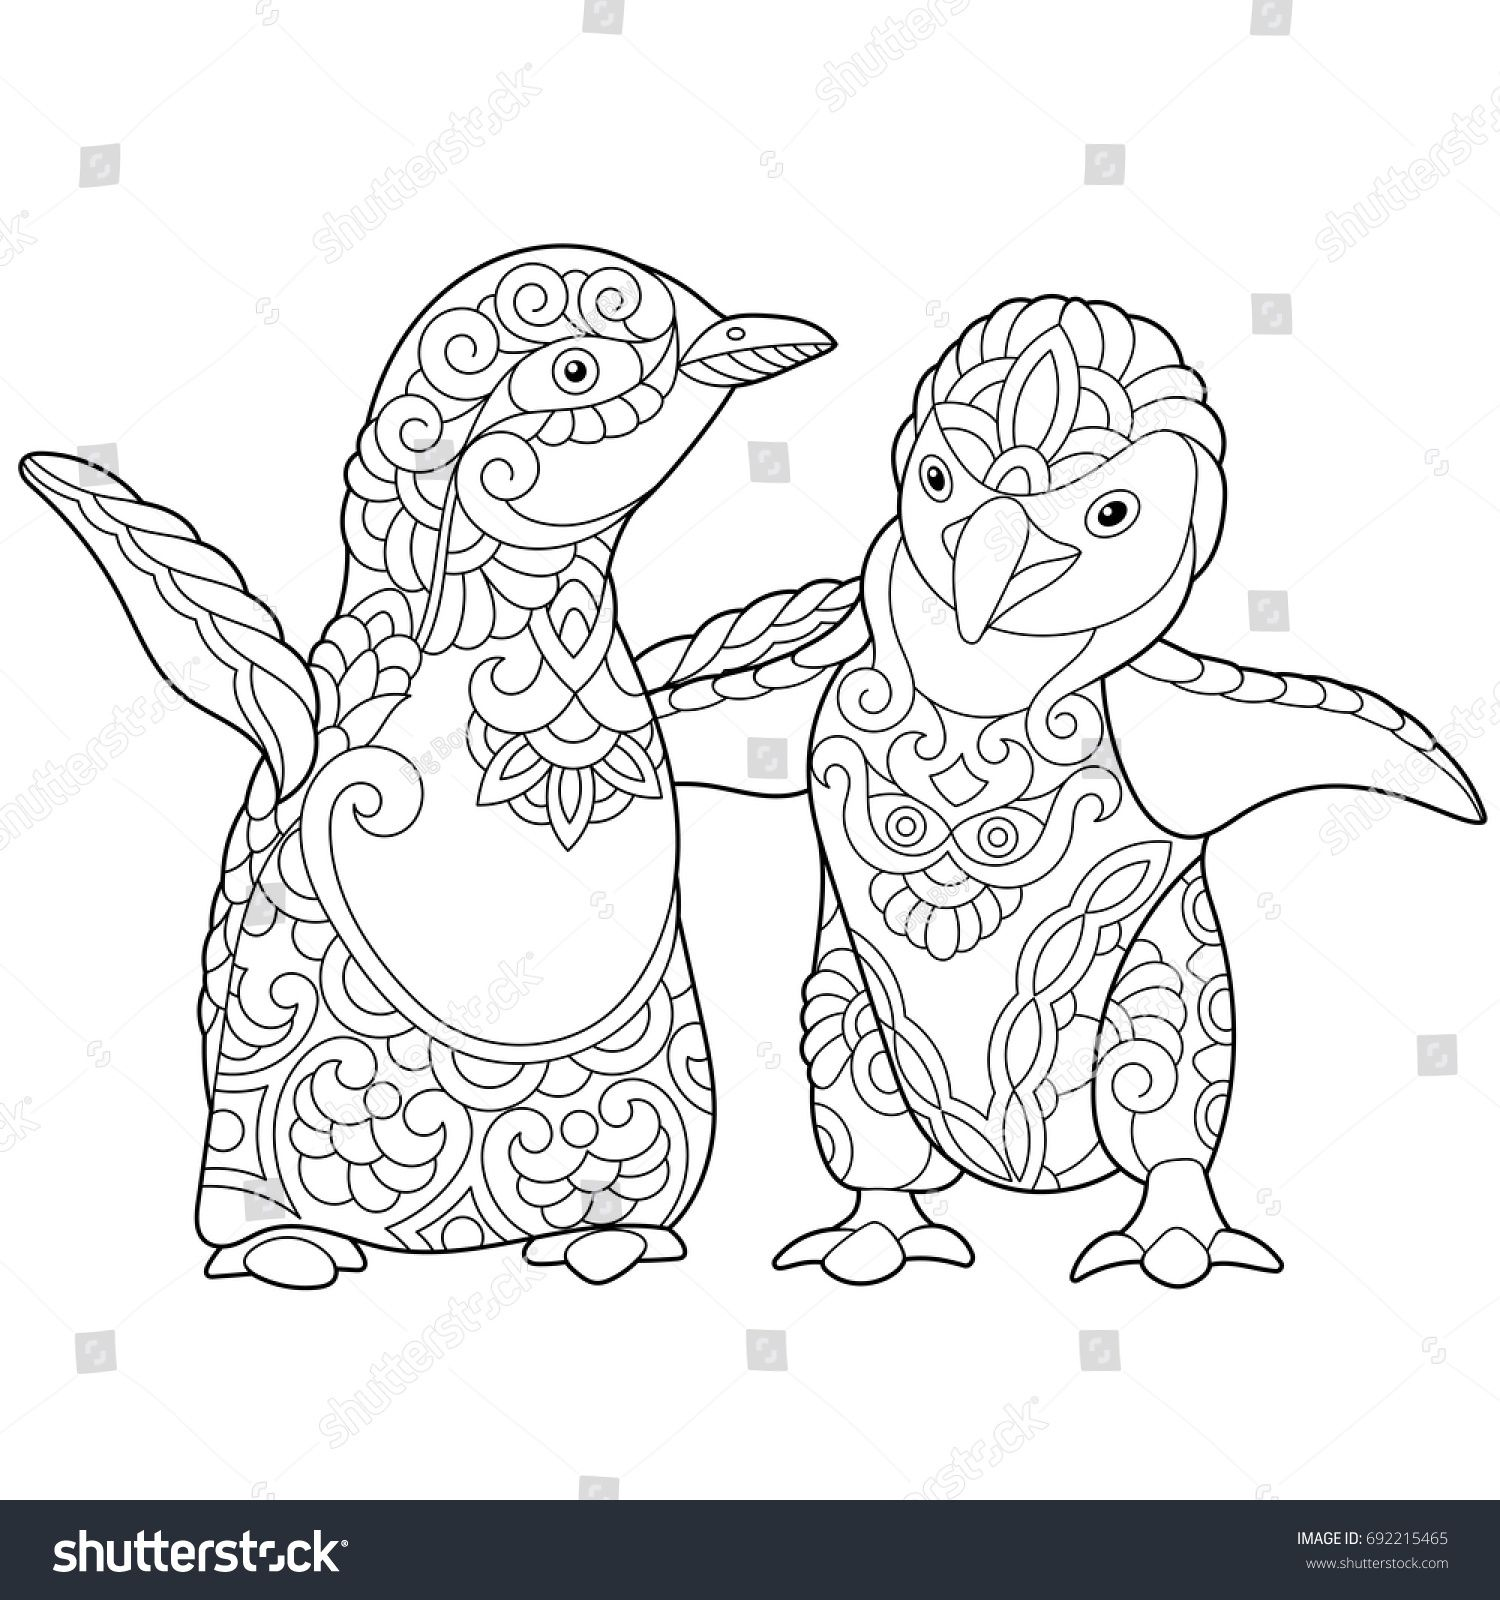 Coloring page of young emperor penguins isolated on white for Penguin adult coloring pages